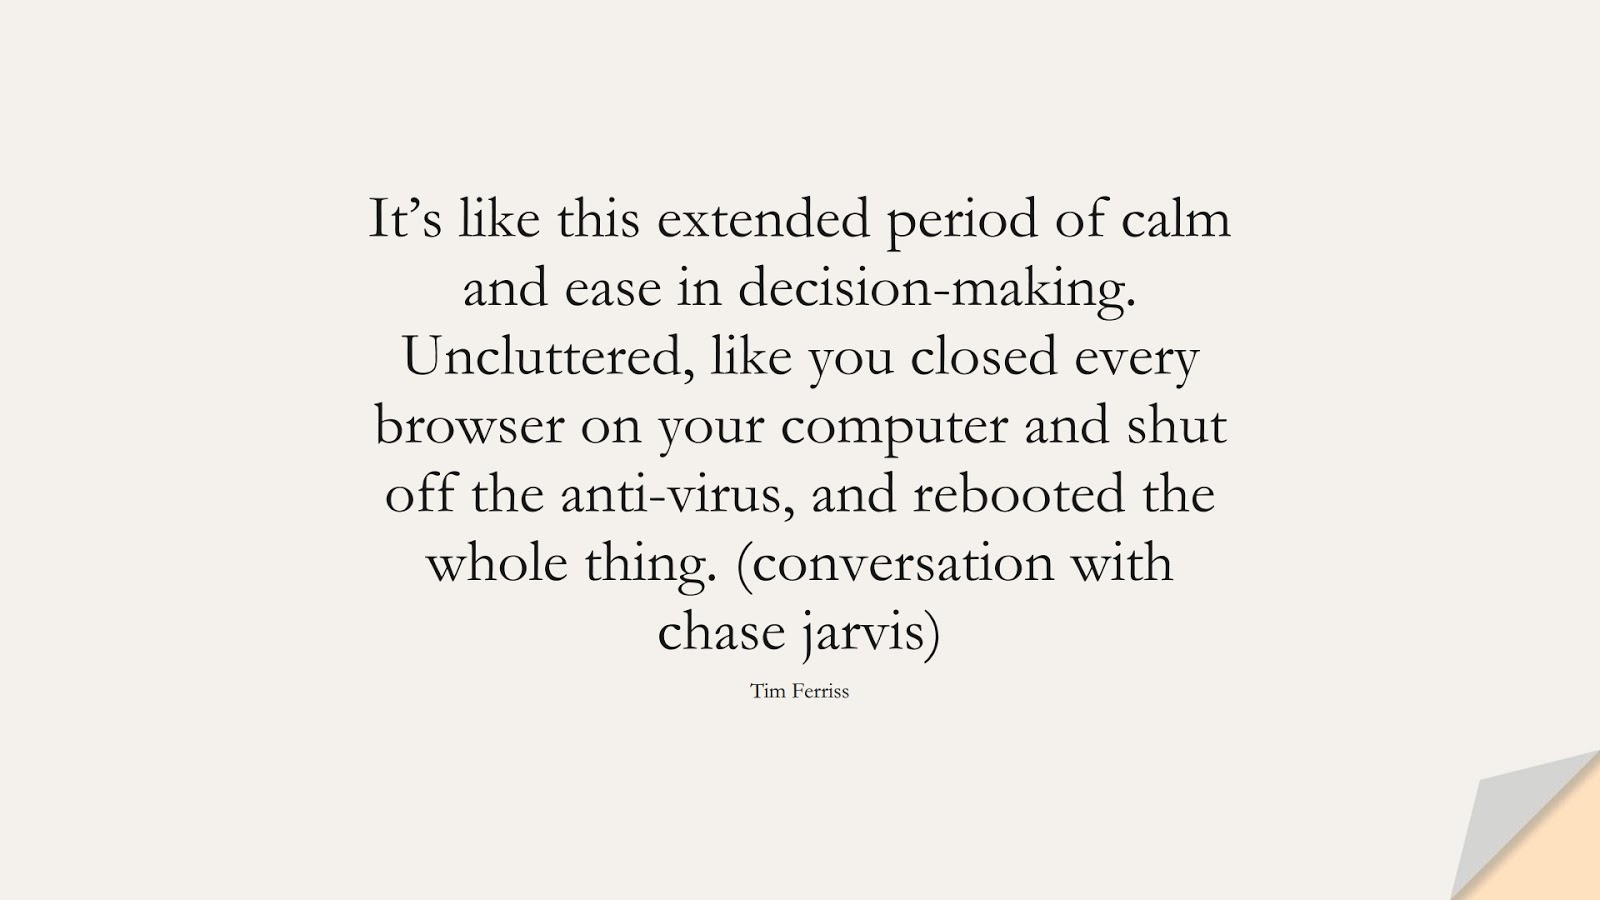 It's like this extended period of calm and ease in decision-making. Uncluttered, like you closed every browser on your computer and shut off the anti-virus, and rebooted the whole thing. (conversation with chase jarvis) (Tim Ferriss);  #TimFerrissQuotes